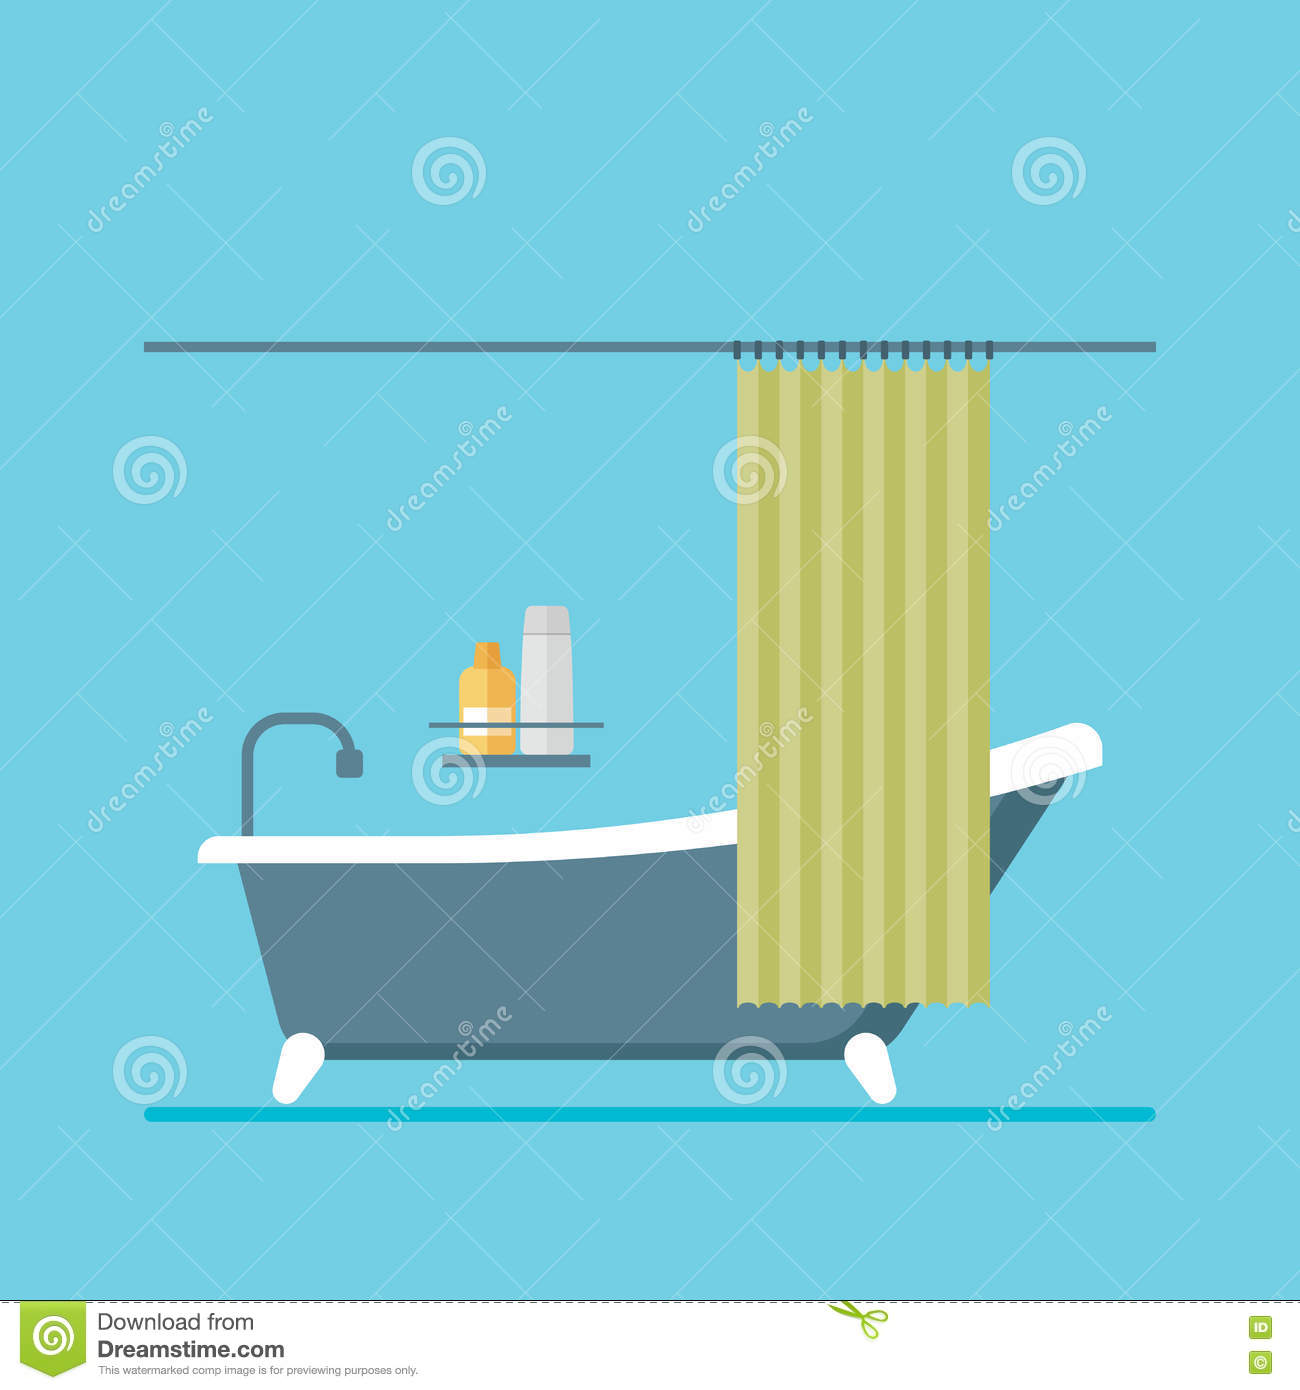 Modern Design Shower Room With A Curtain Stock Vector